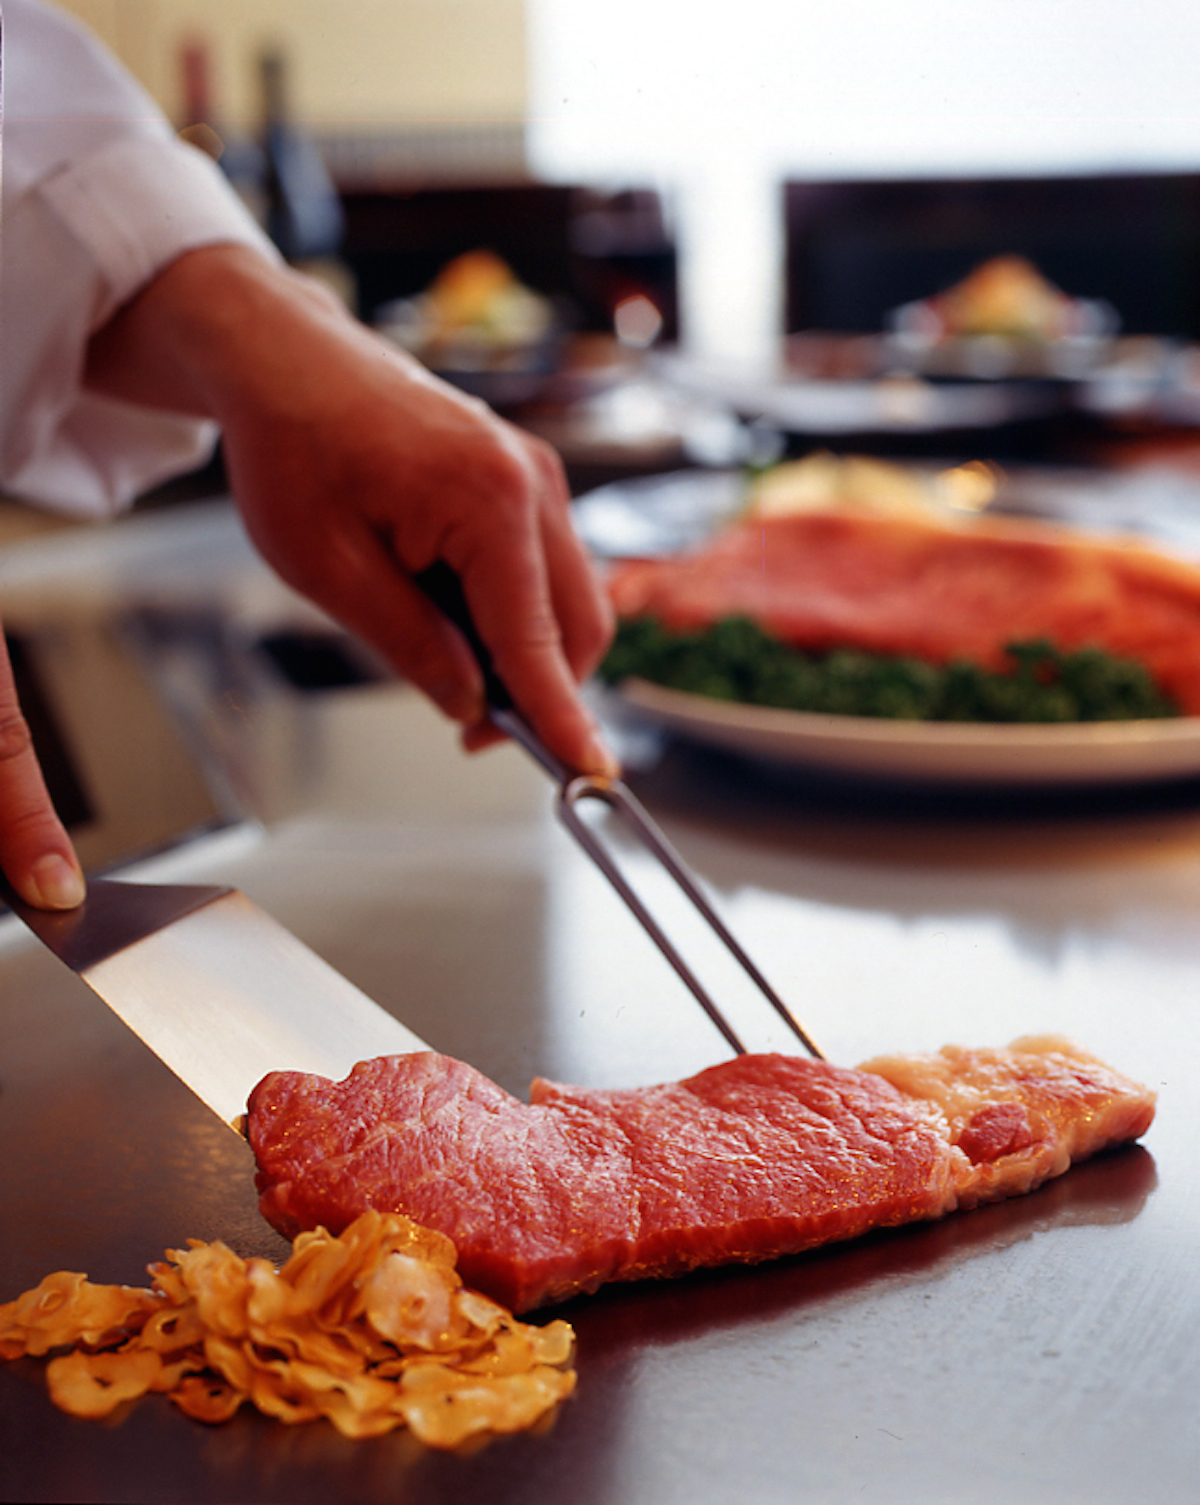 Decorating western door steakhouse images : Wagyu: Your guide to Japan's marbled, flavorful beef | CNN Travel